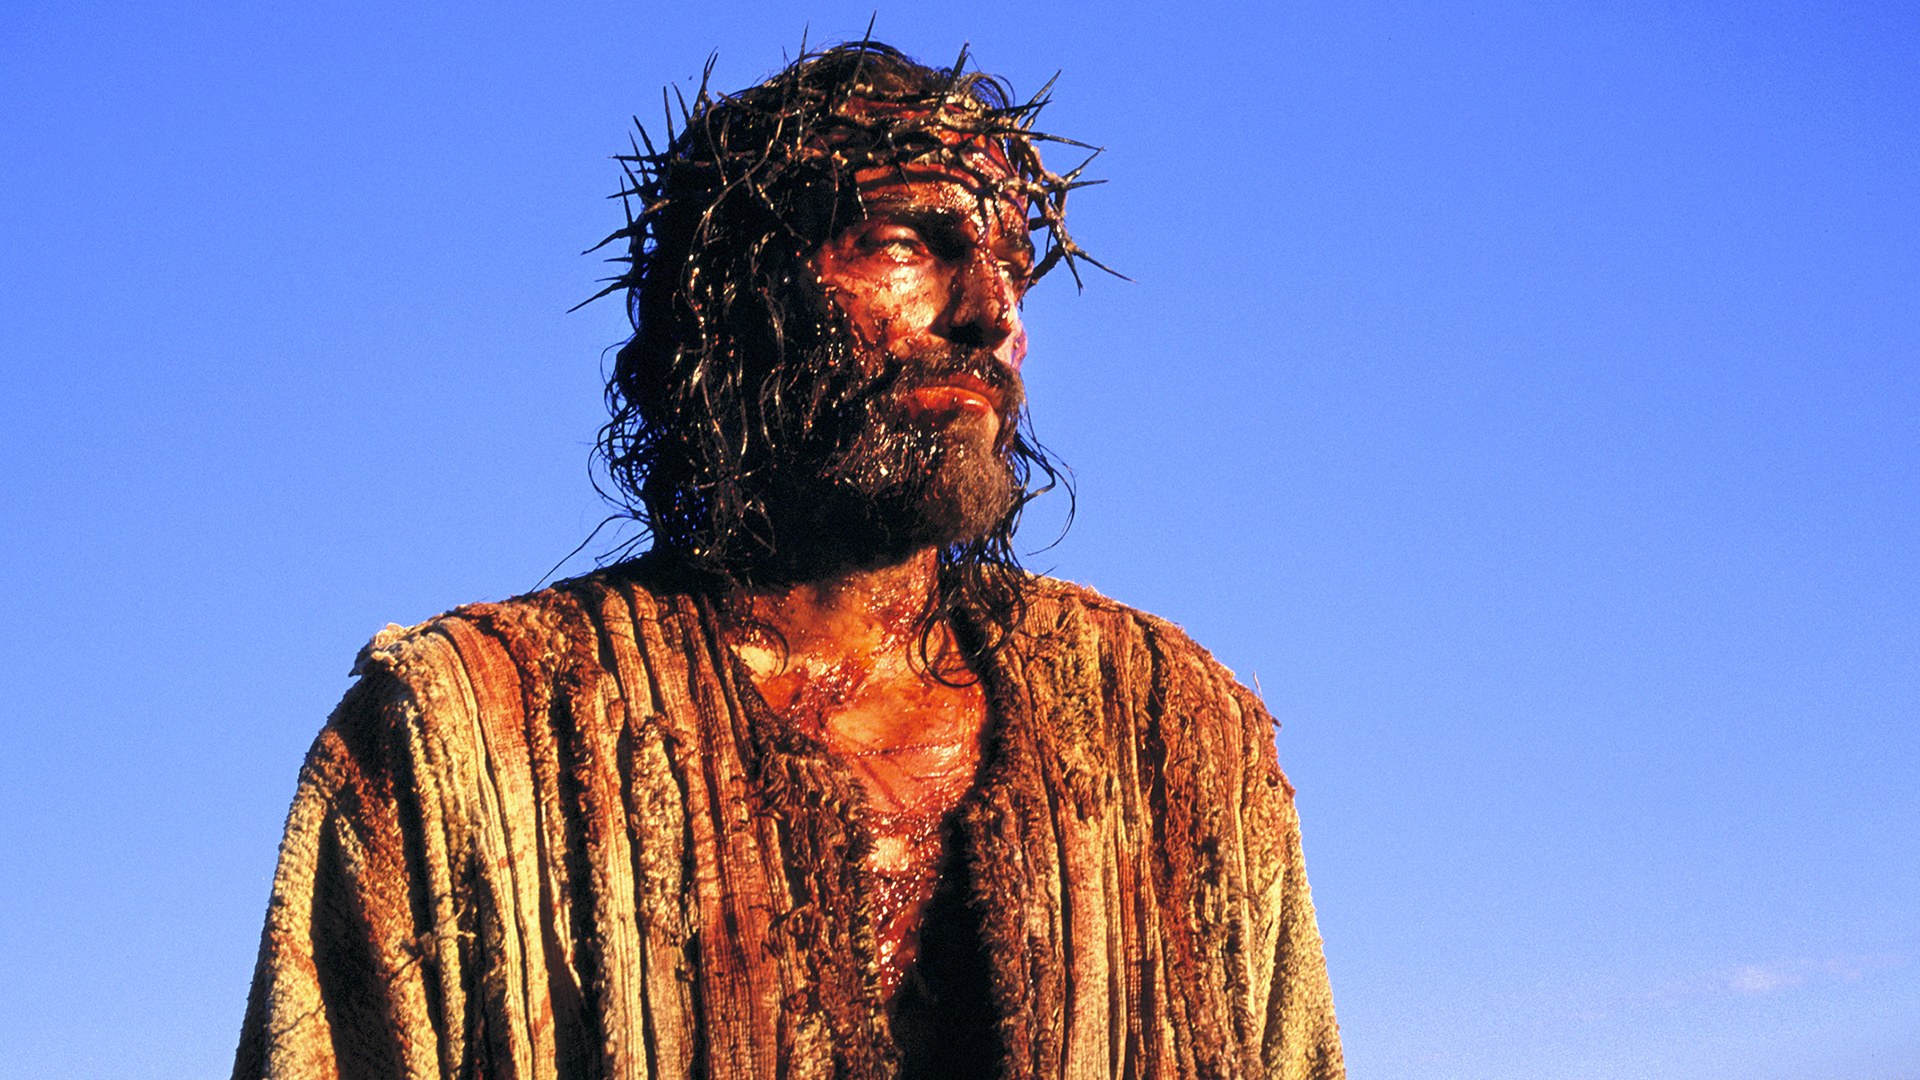 the passion of the christ 1080p free download